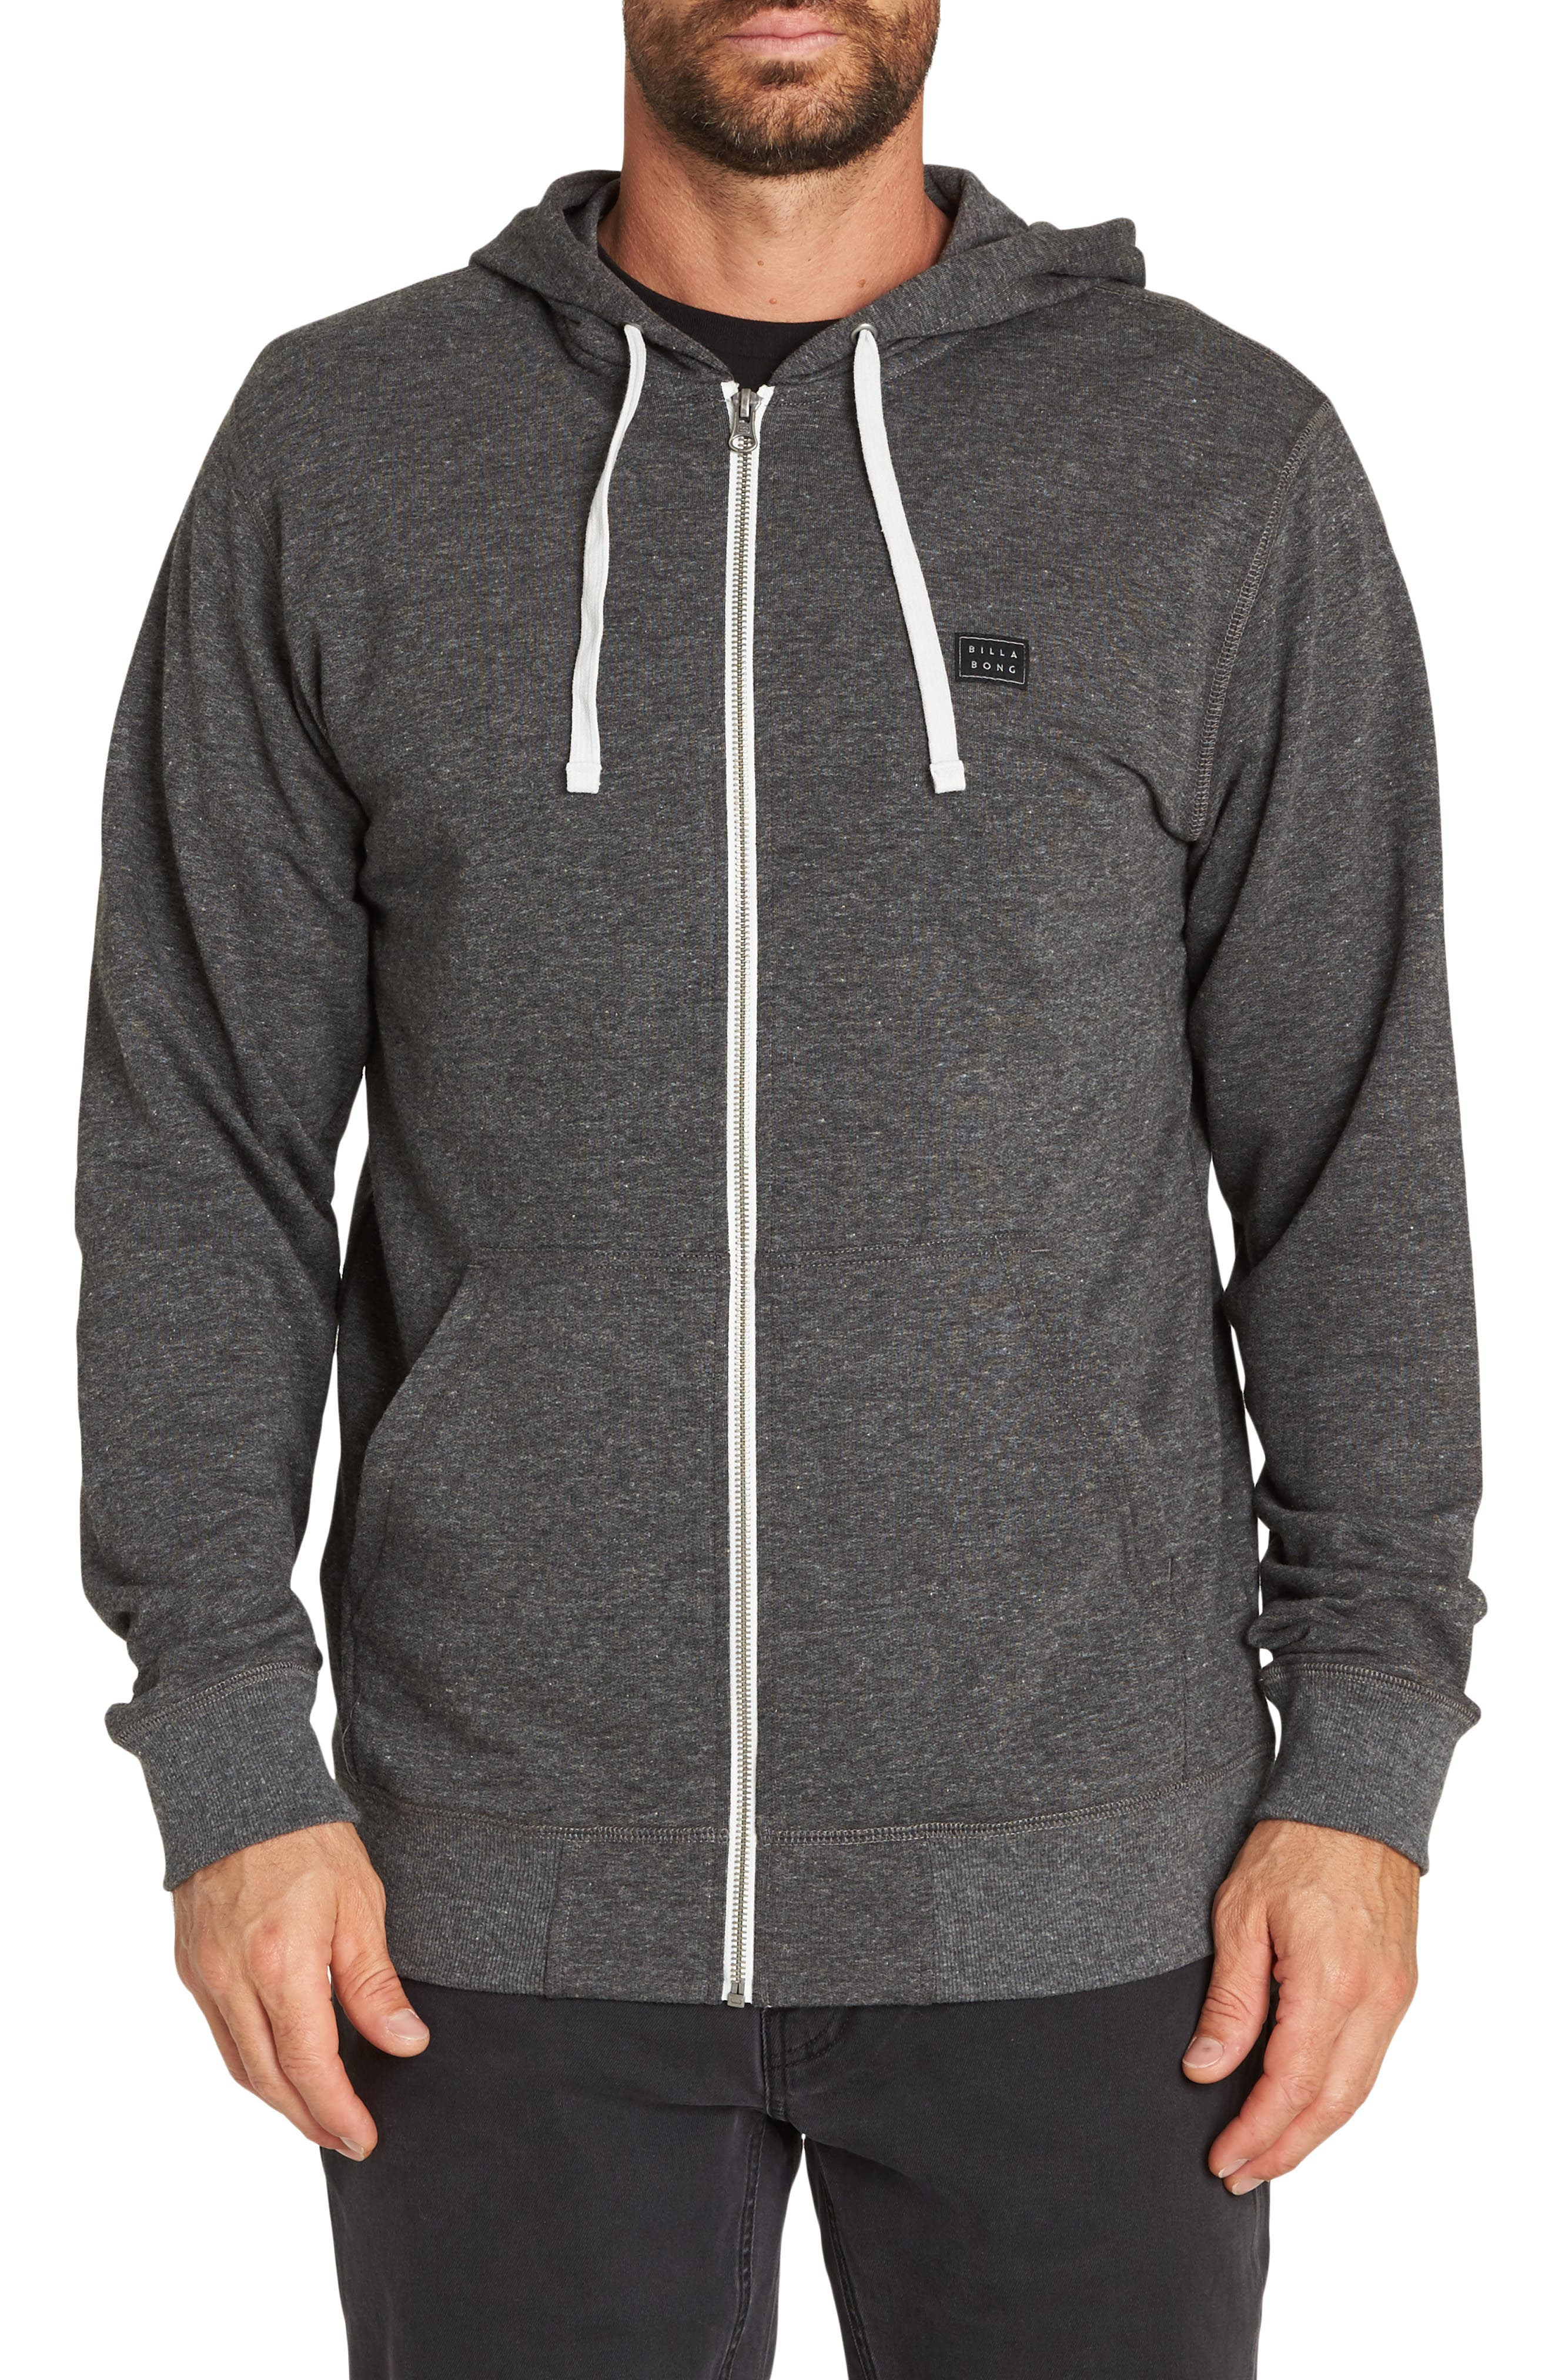 All Day Zip Hoodie,                             Main thumbnail 1, color,                             BLACK